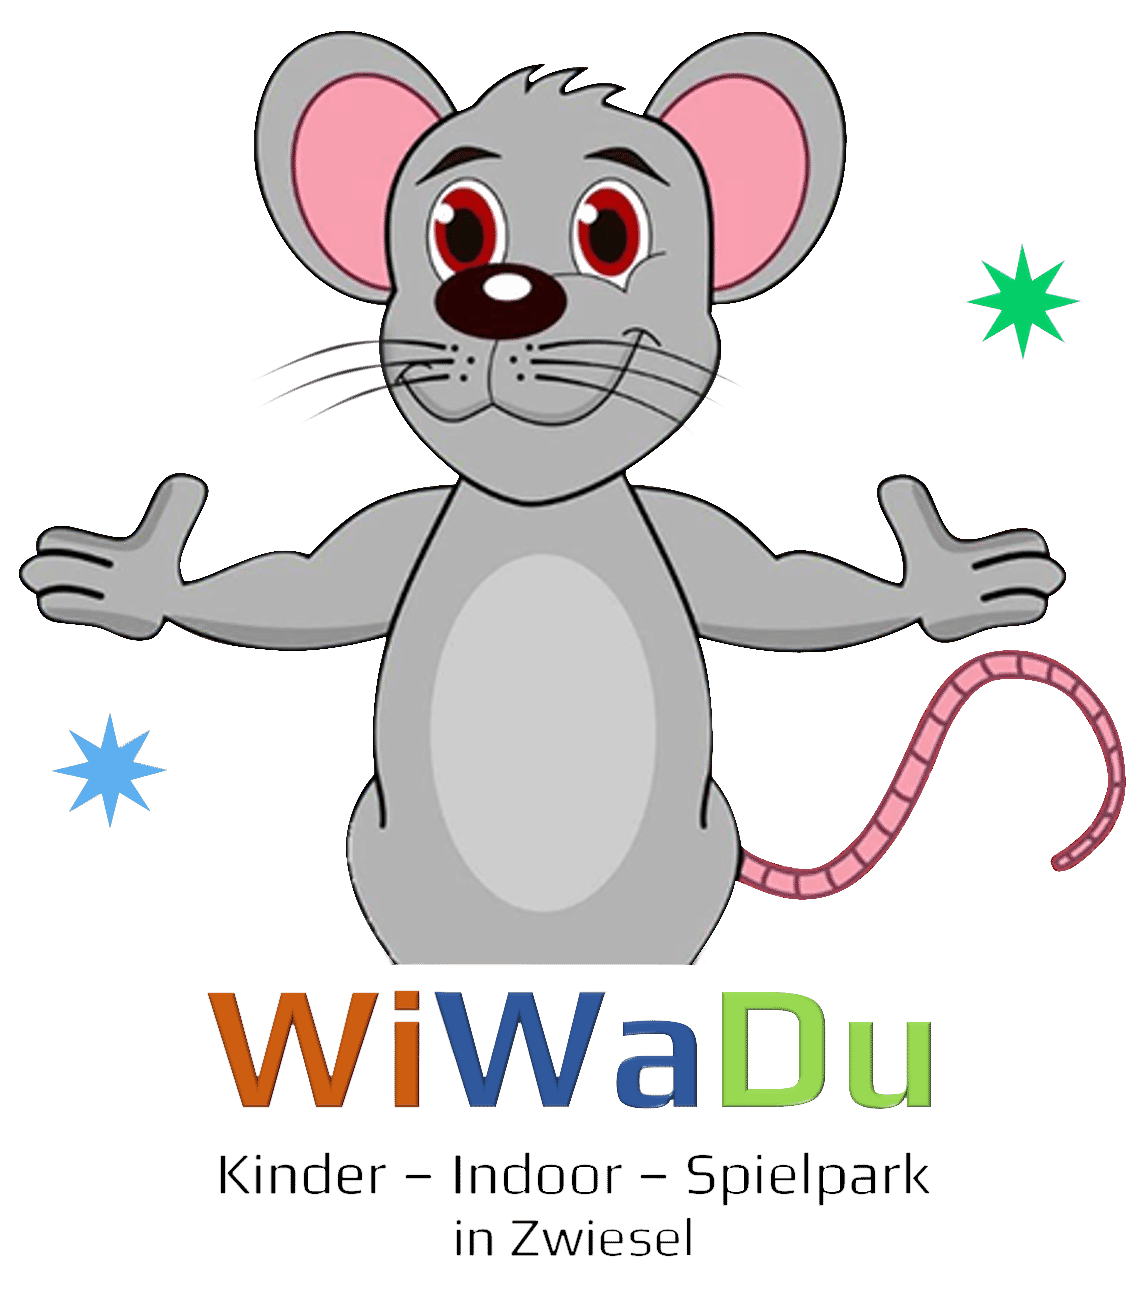 WiWaDu Kinder – Indoor – Spielpark